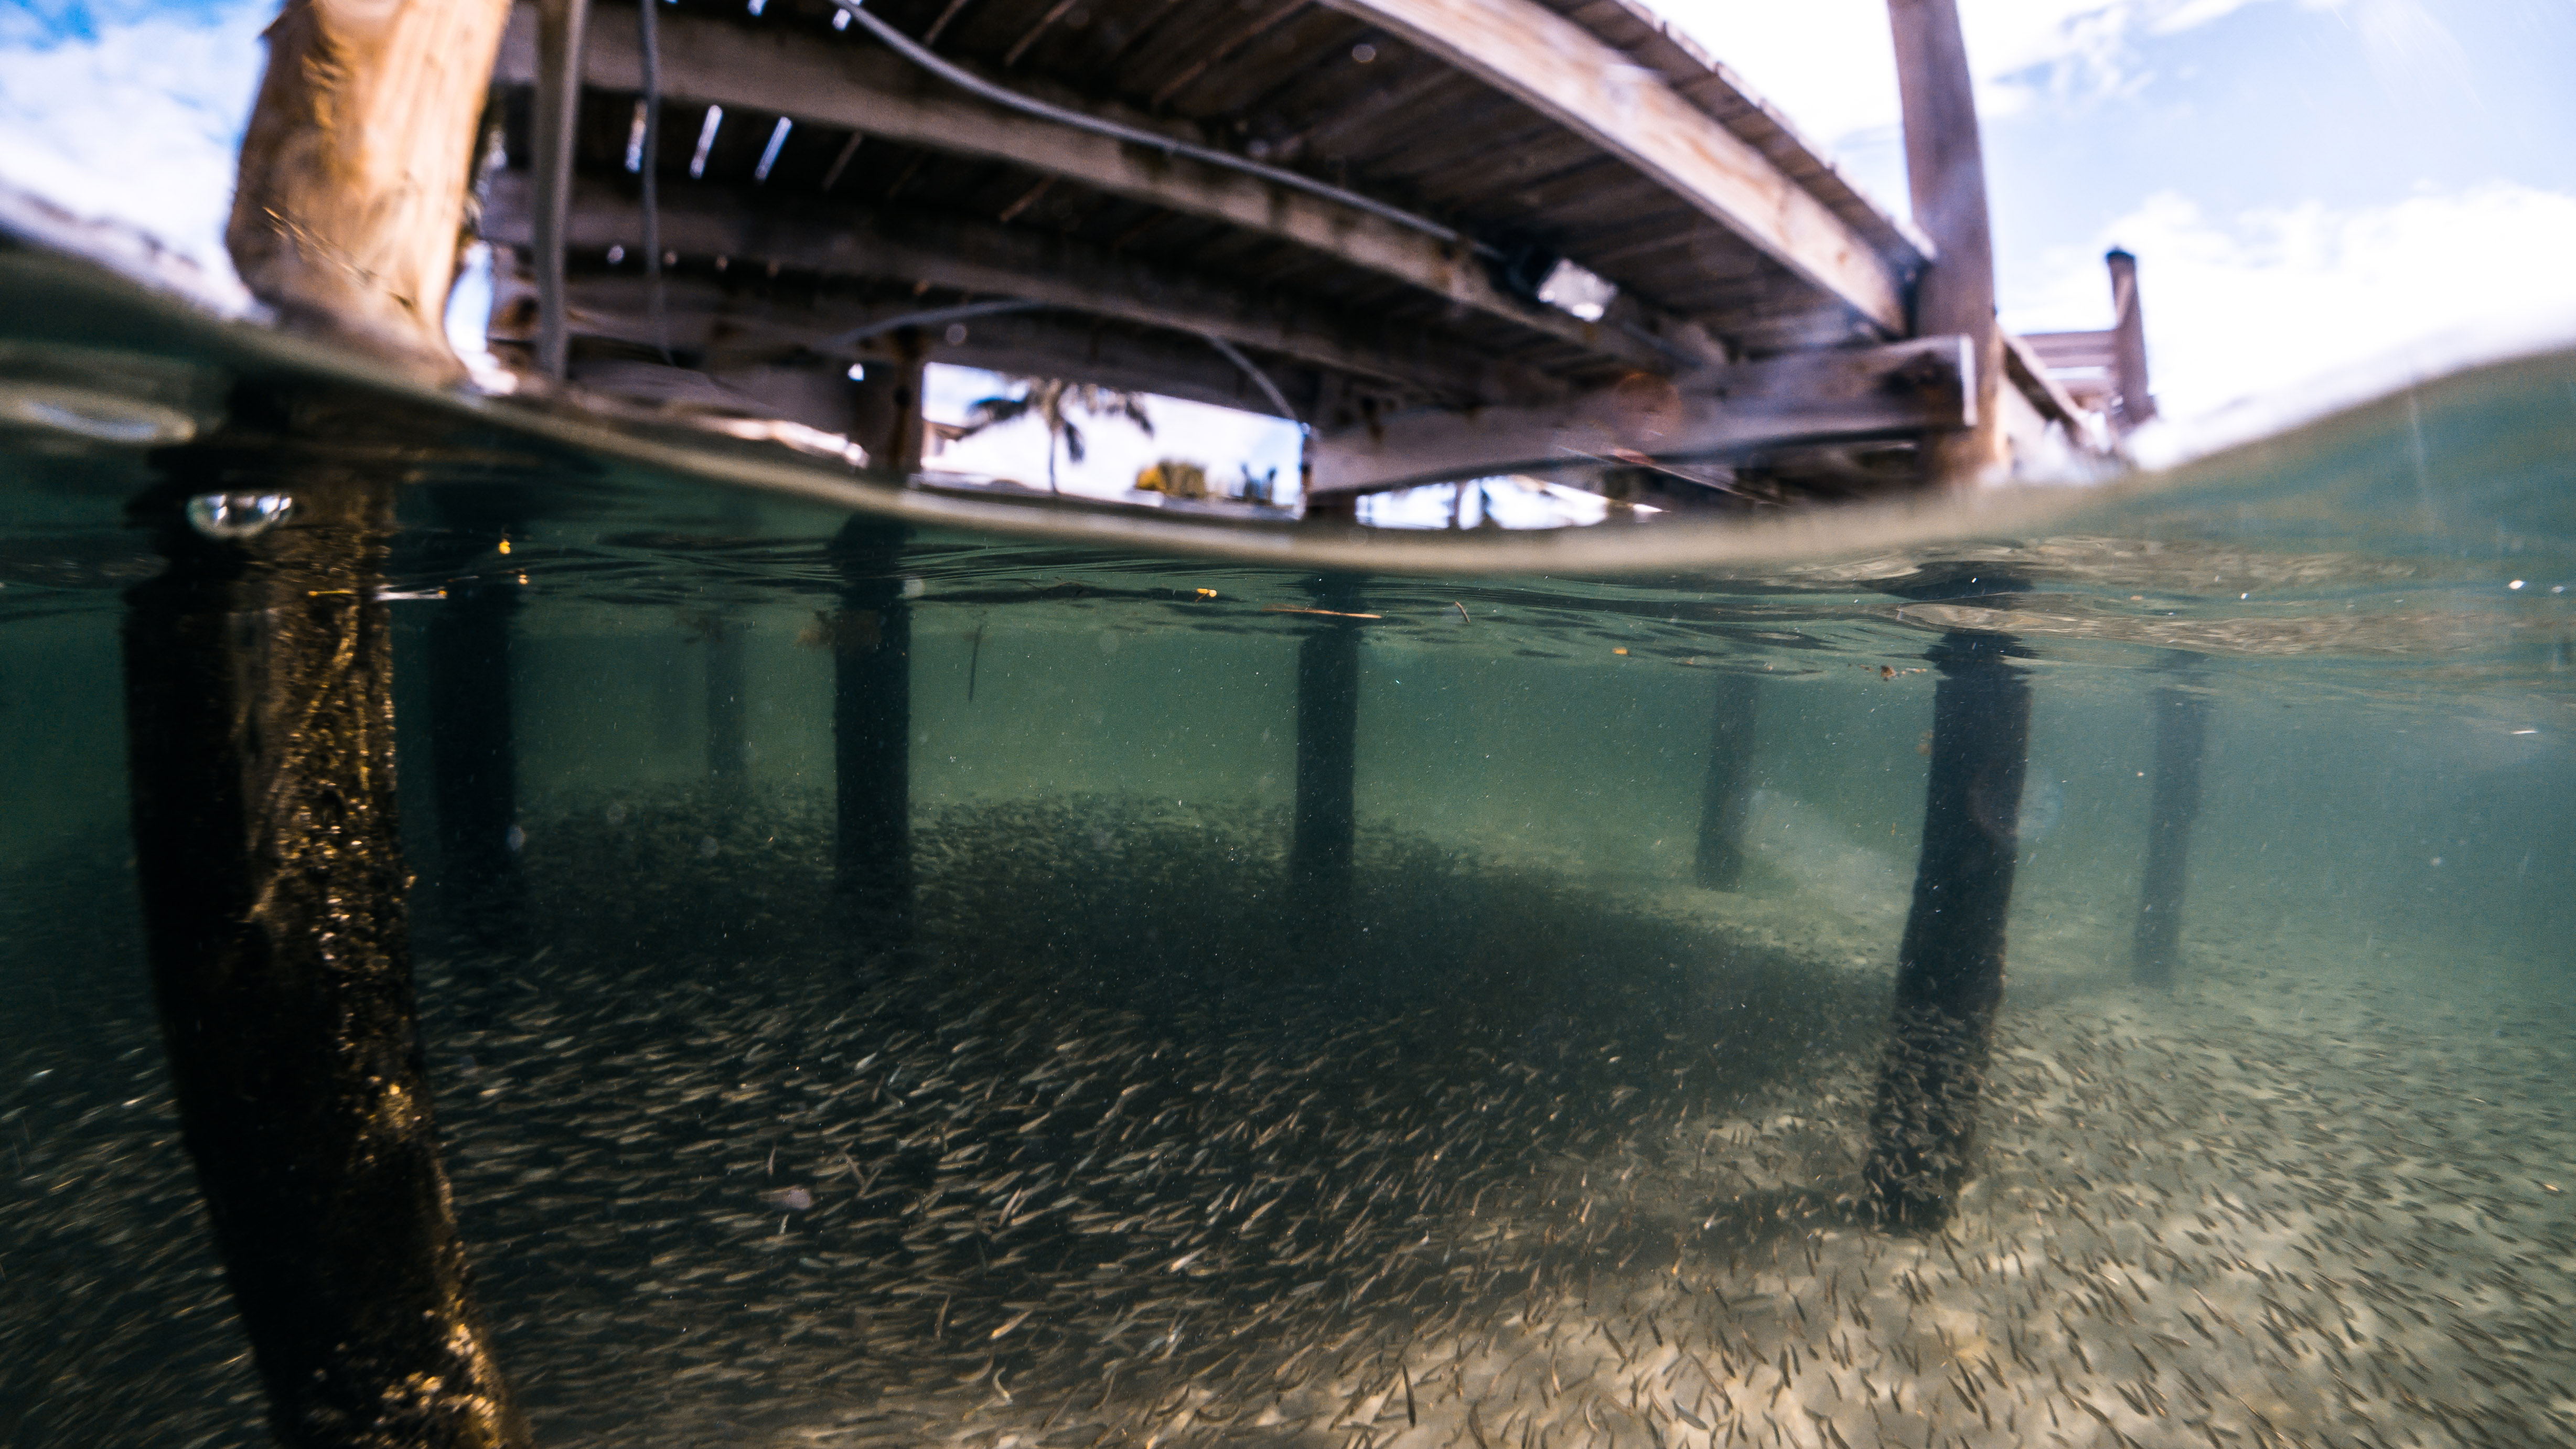 Overhead structure and shade can protect forage fish from birds, but leave them vulnerable to ambush by predators lurking in the shadows. Small schooling fish are also susceptible to pollution from increasing coastal development and other sources as well as changing ocean conditions, such as more acidic and warmer waters.